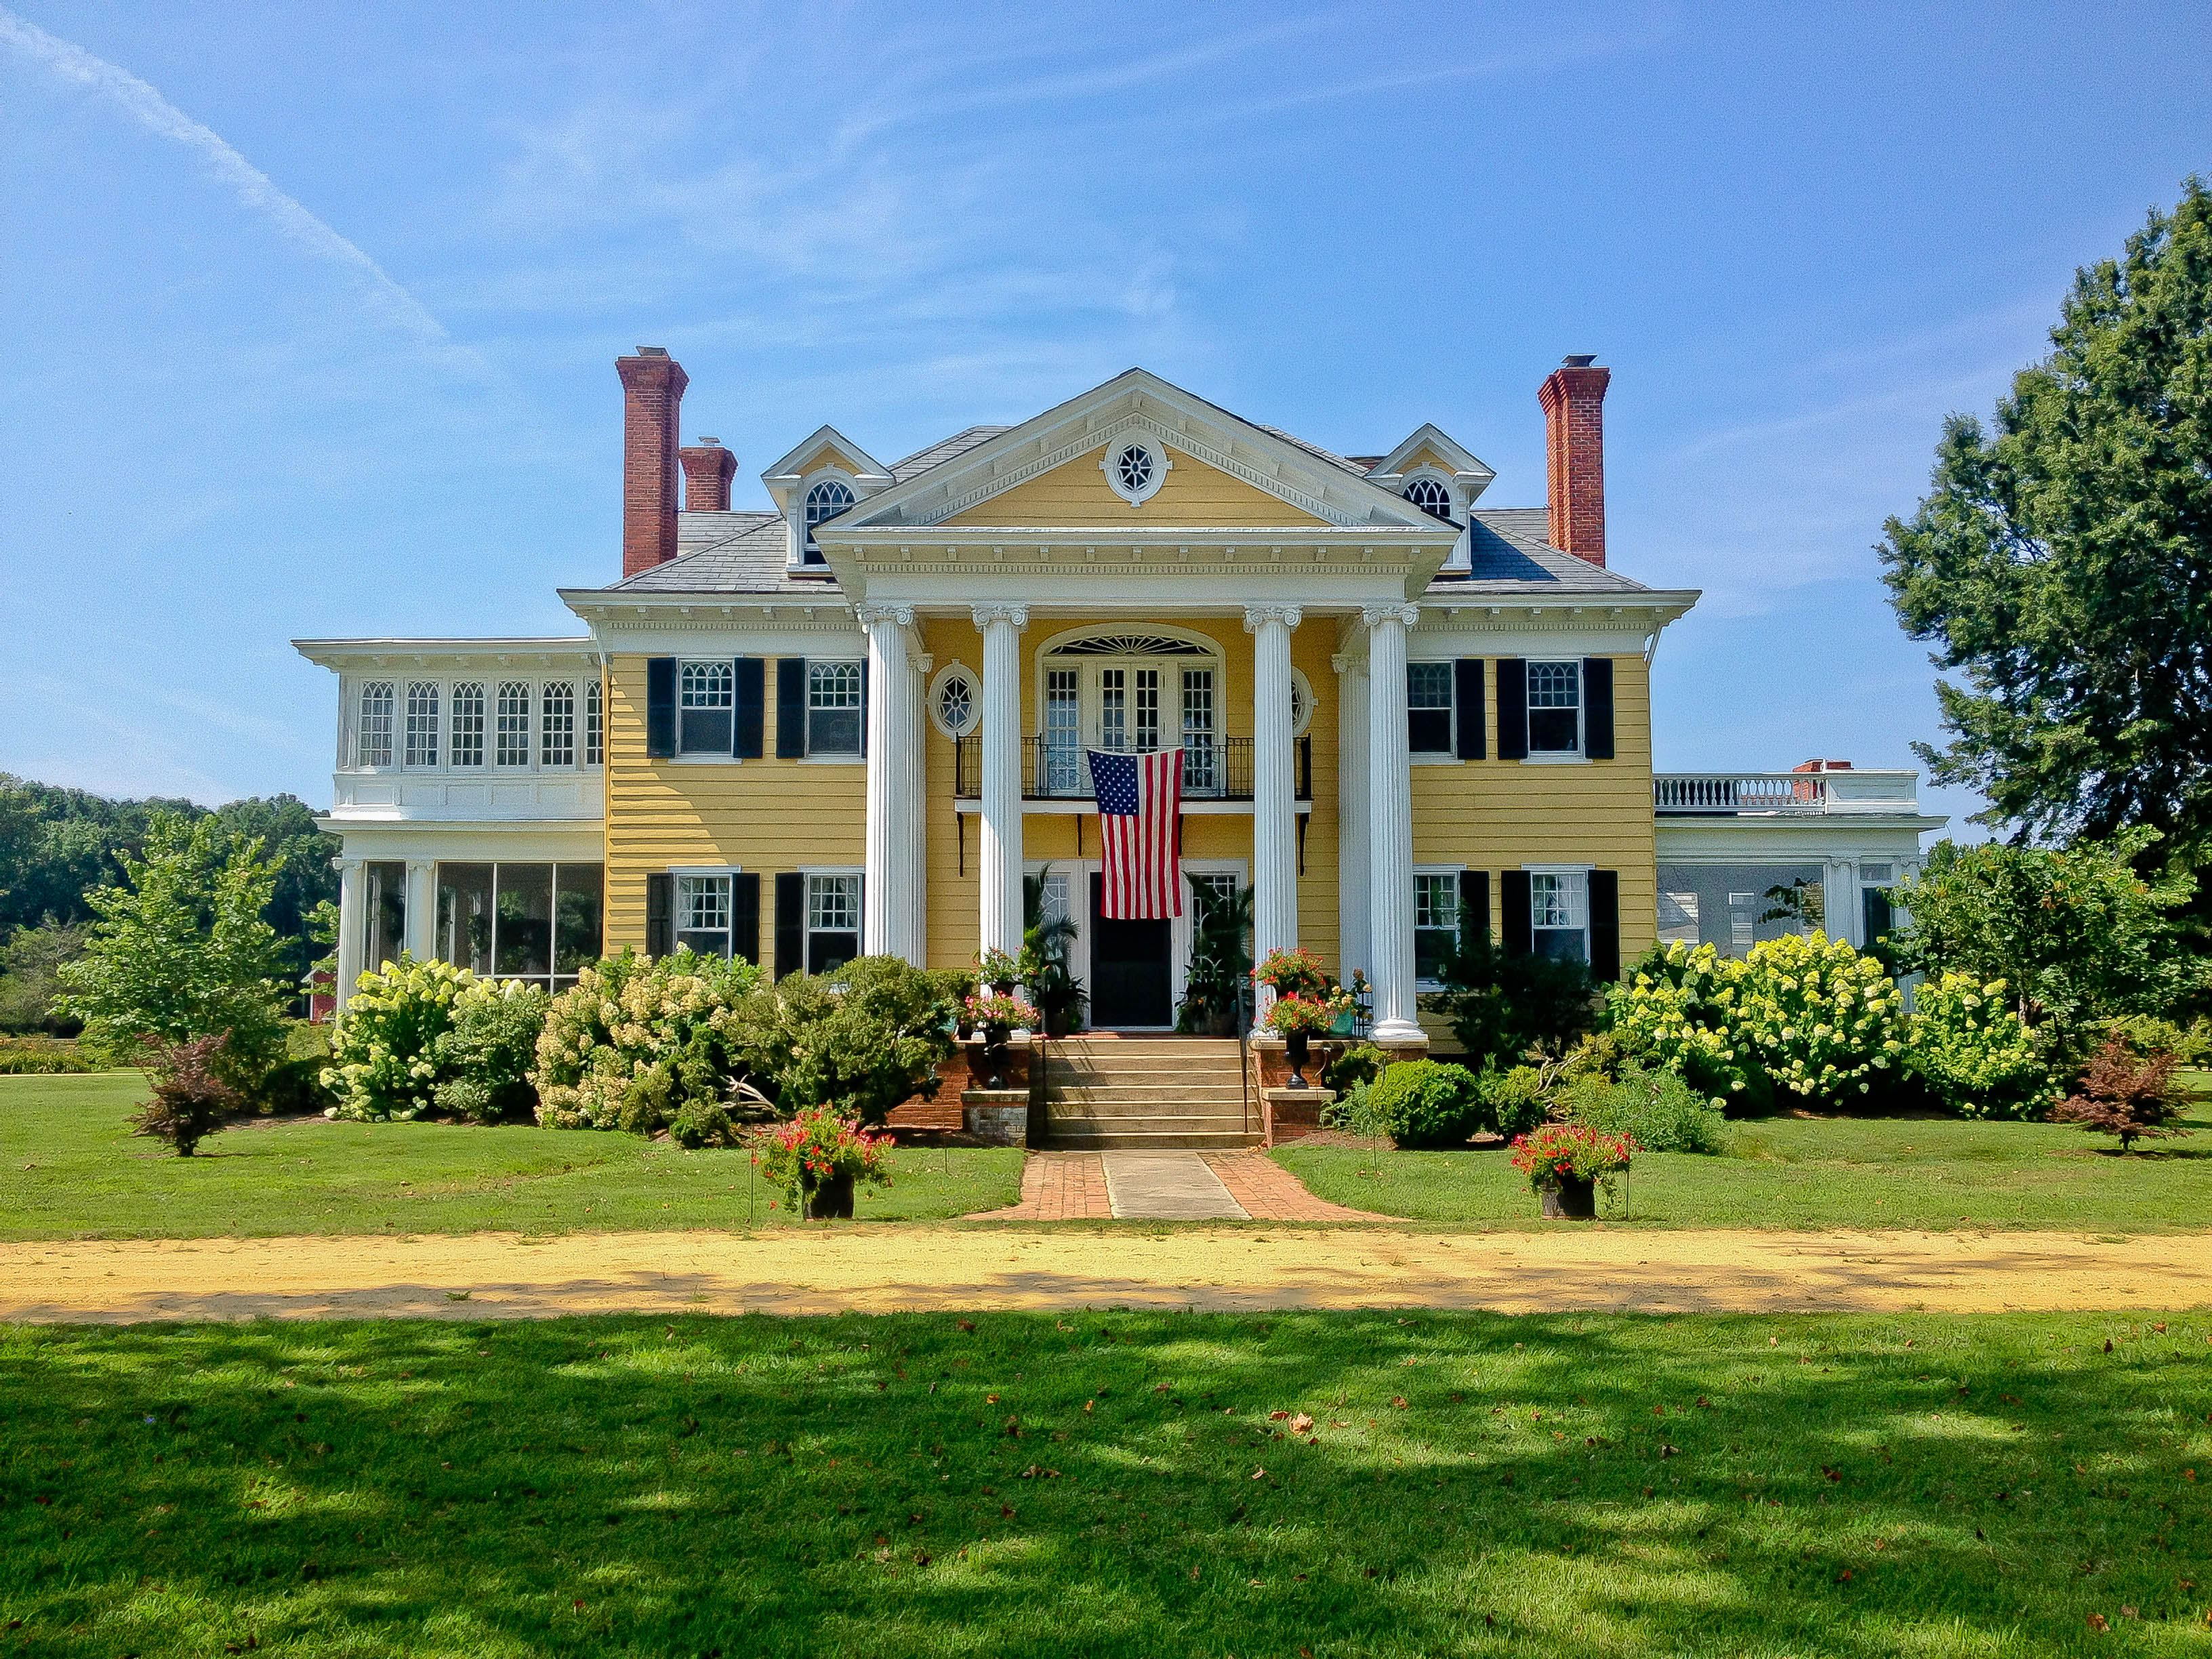 Single Family Home for Sale at Oak Hall 7281 Oak Hall Ln Ware Neck, Virginia 23178 United States